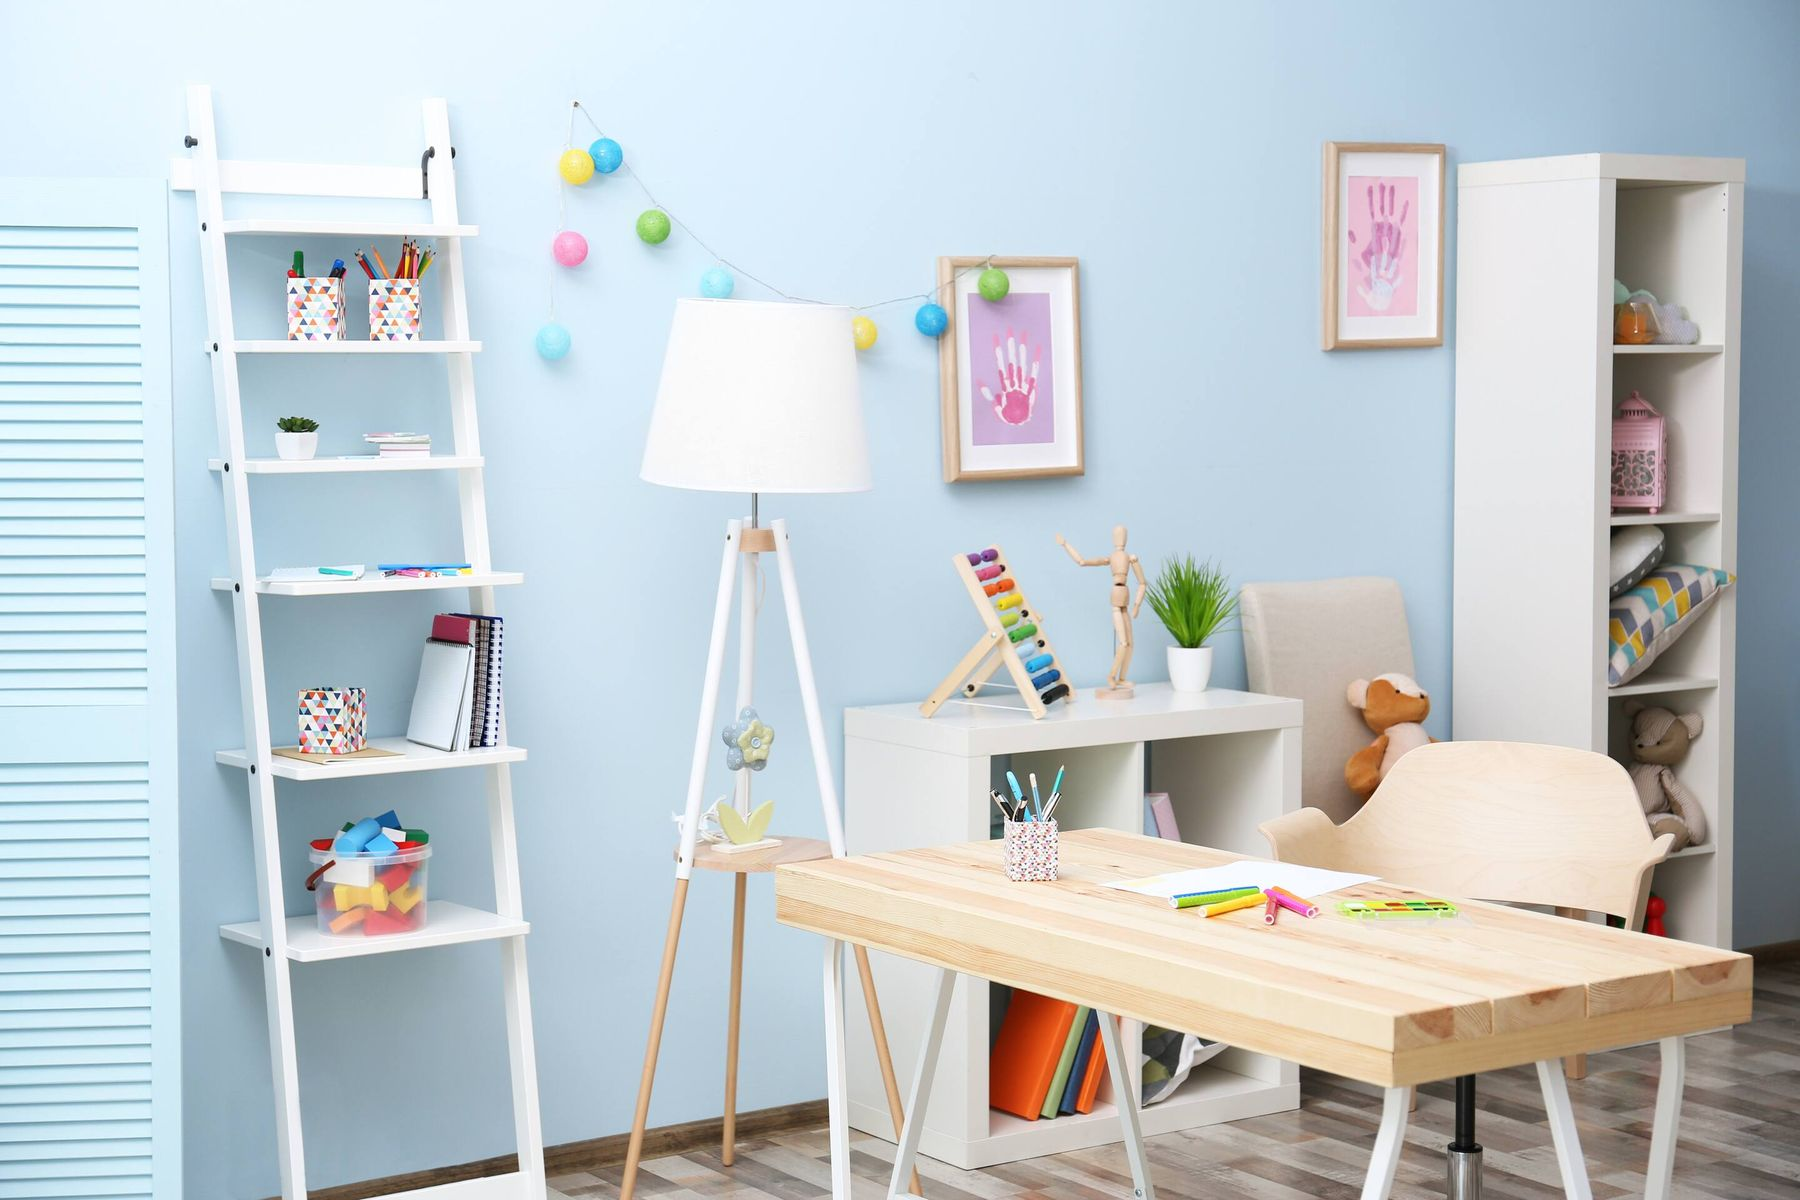 4) Kids' Room Surfaces